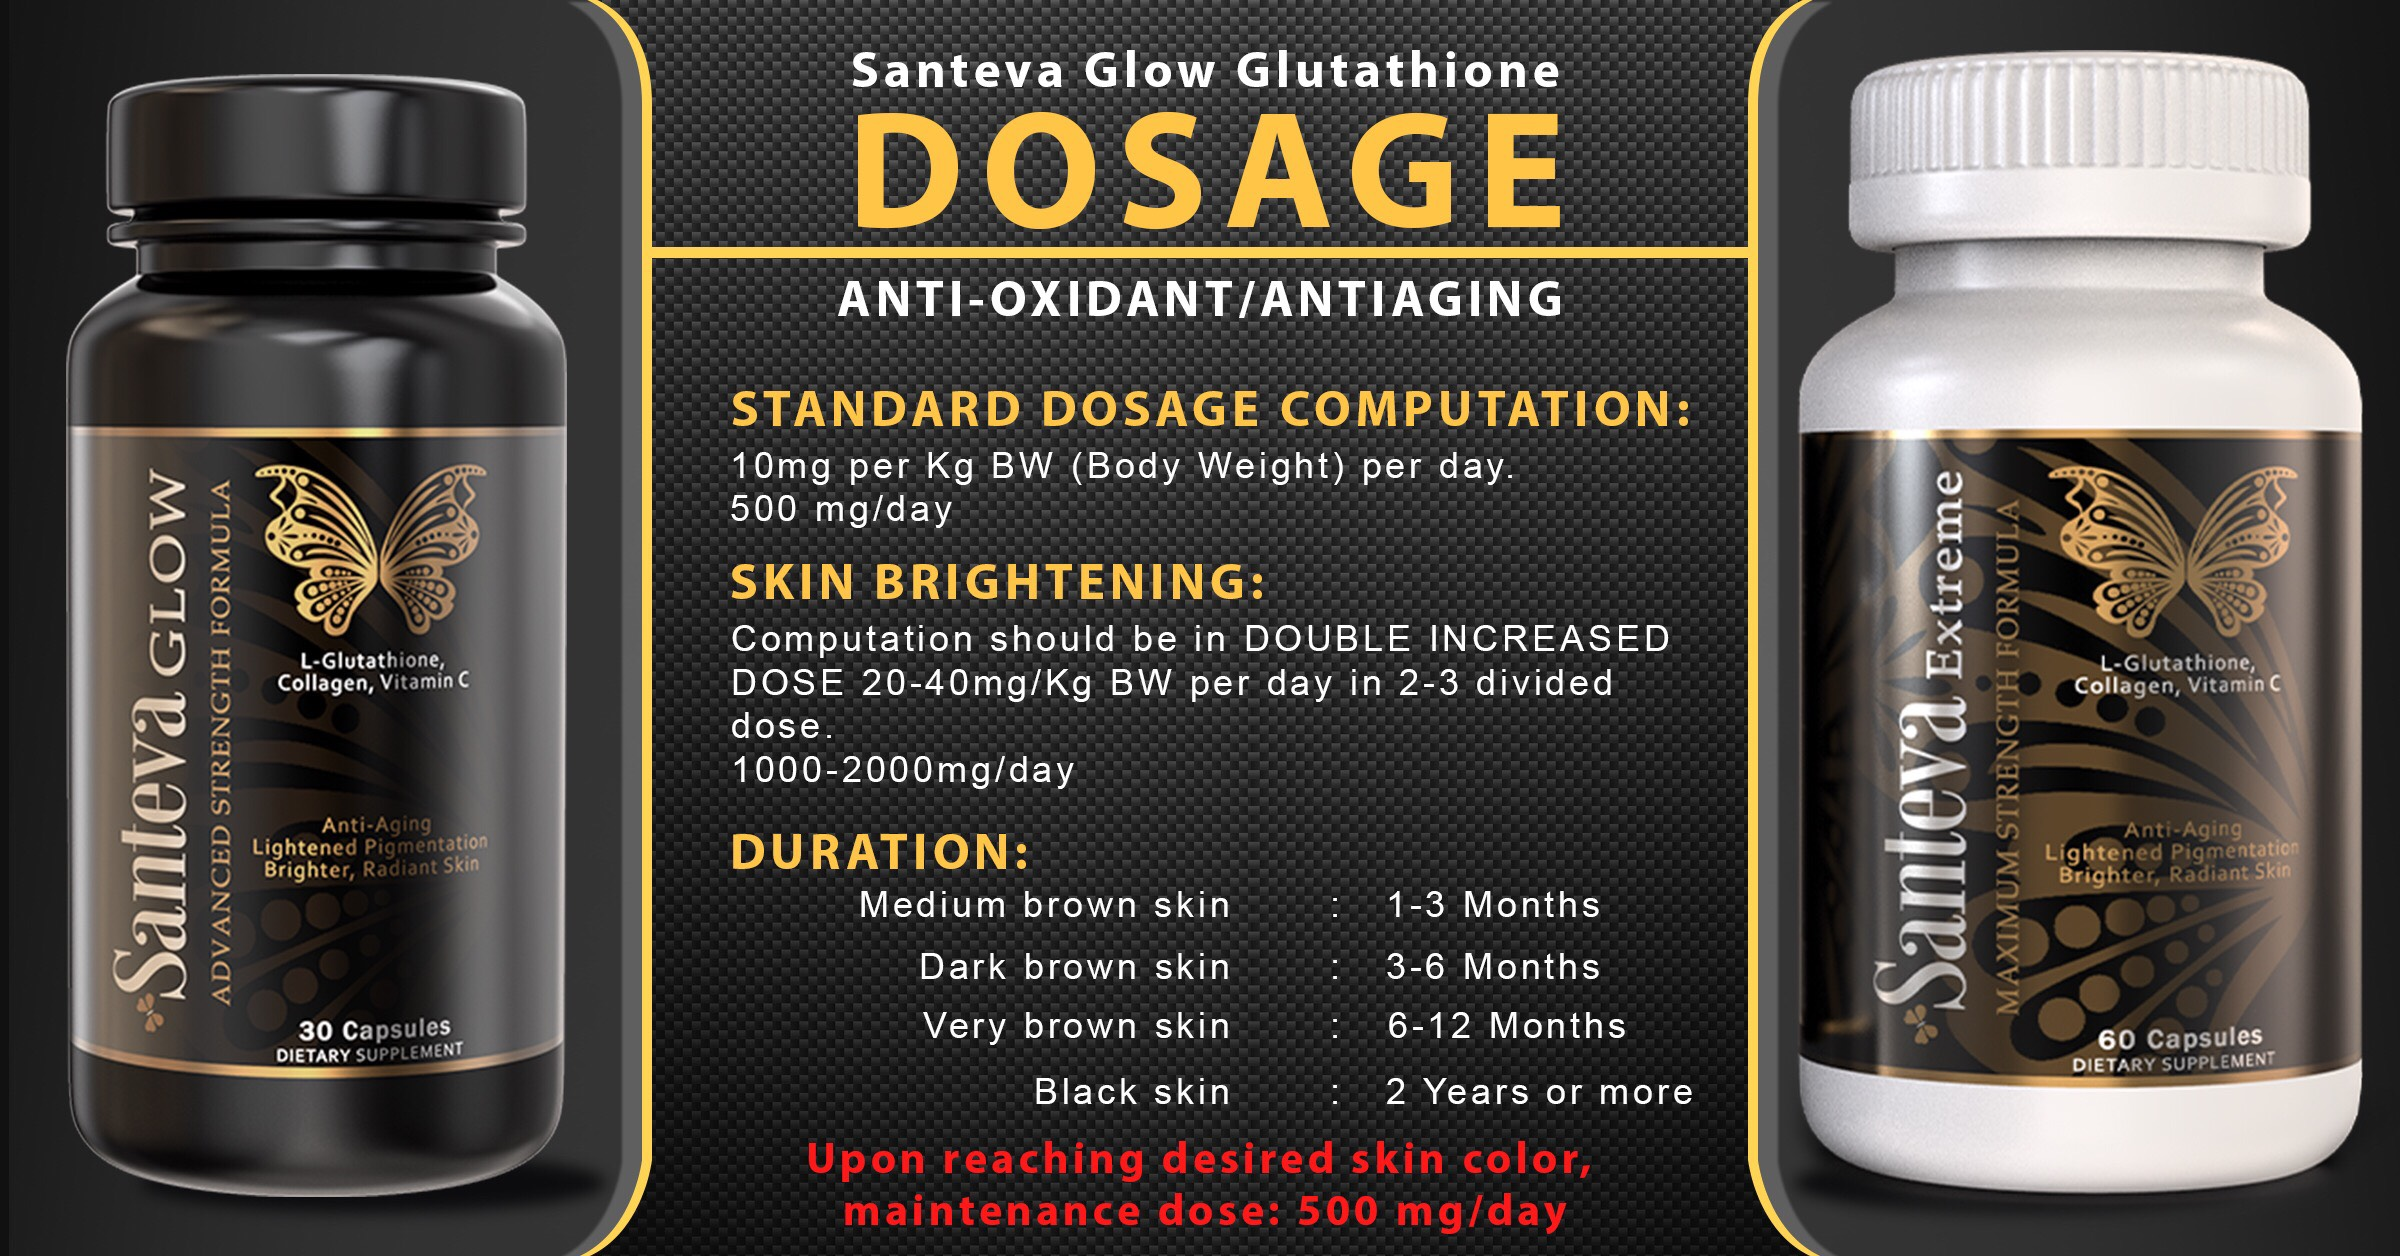 How To Use Our Glutathione - Santeva Health & Beauty